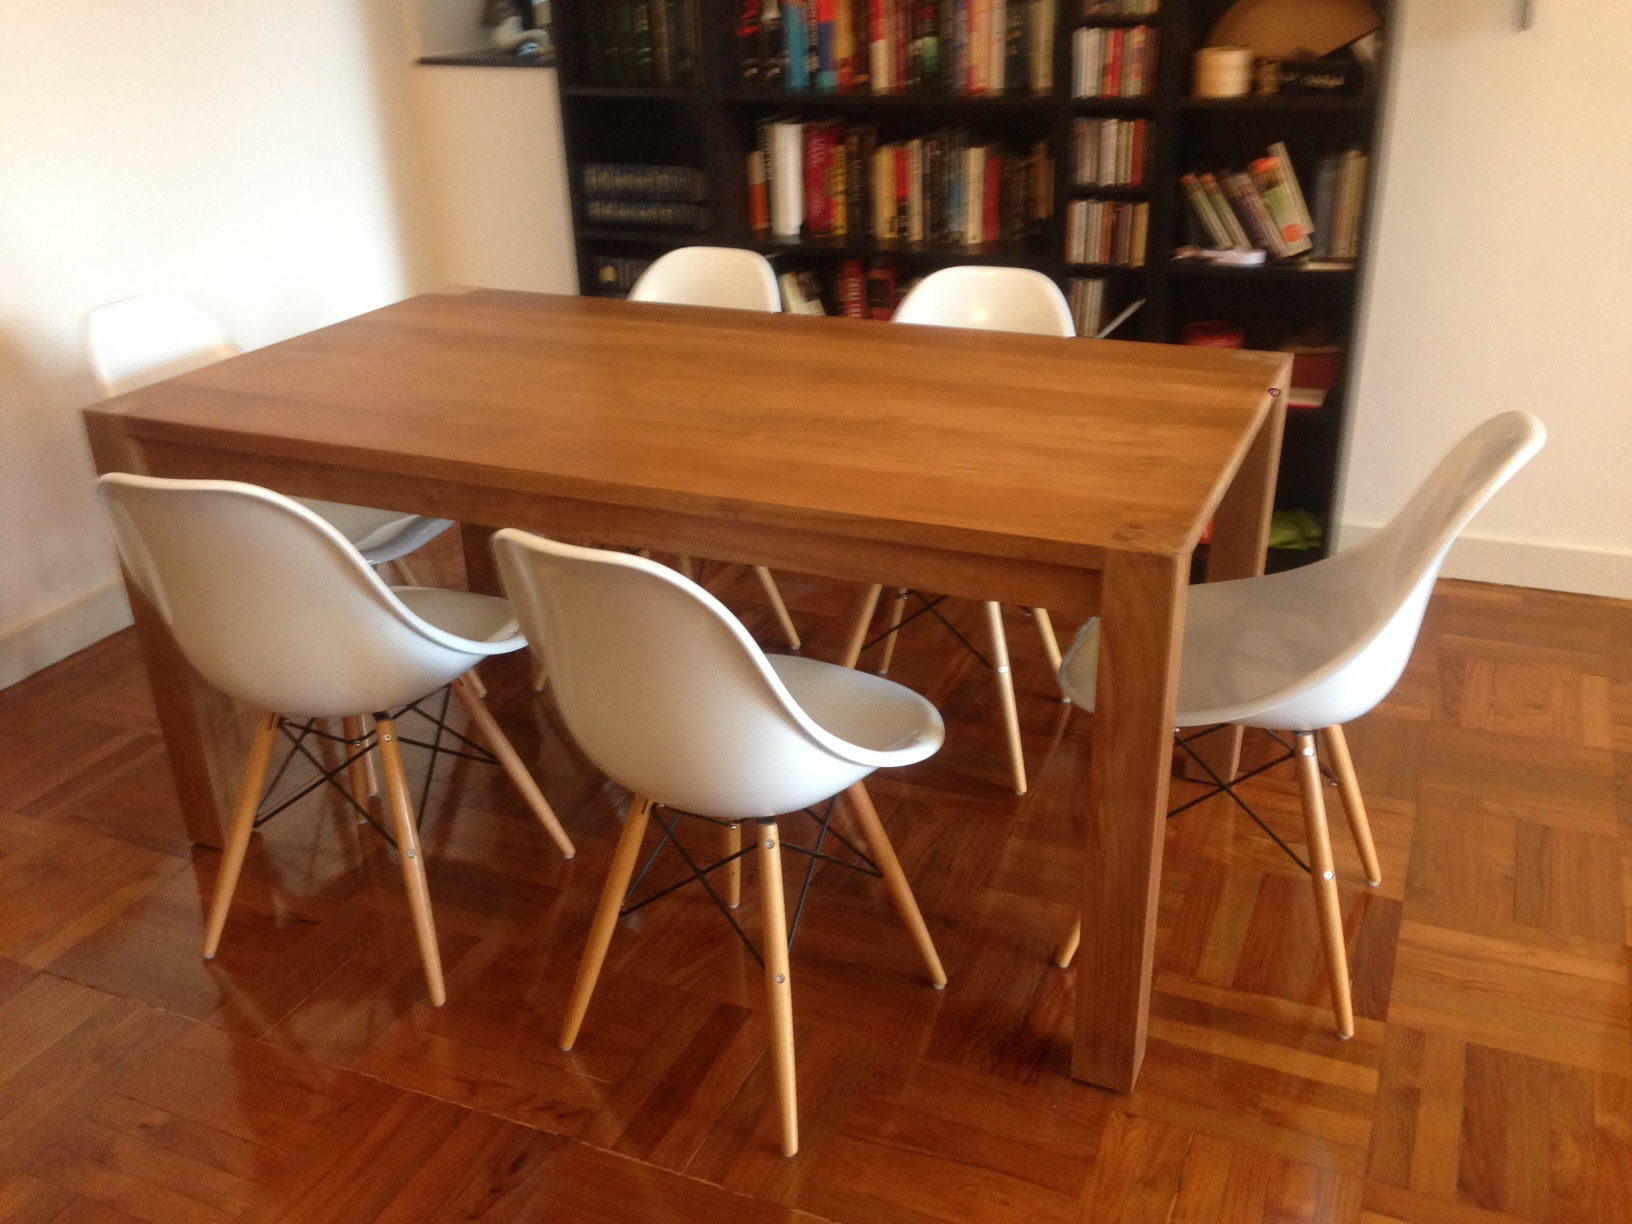 dining table and chairs hong kong from ikea irony home limited